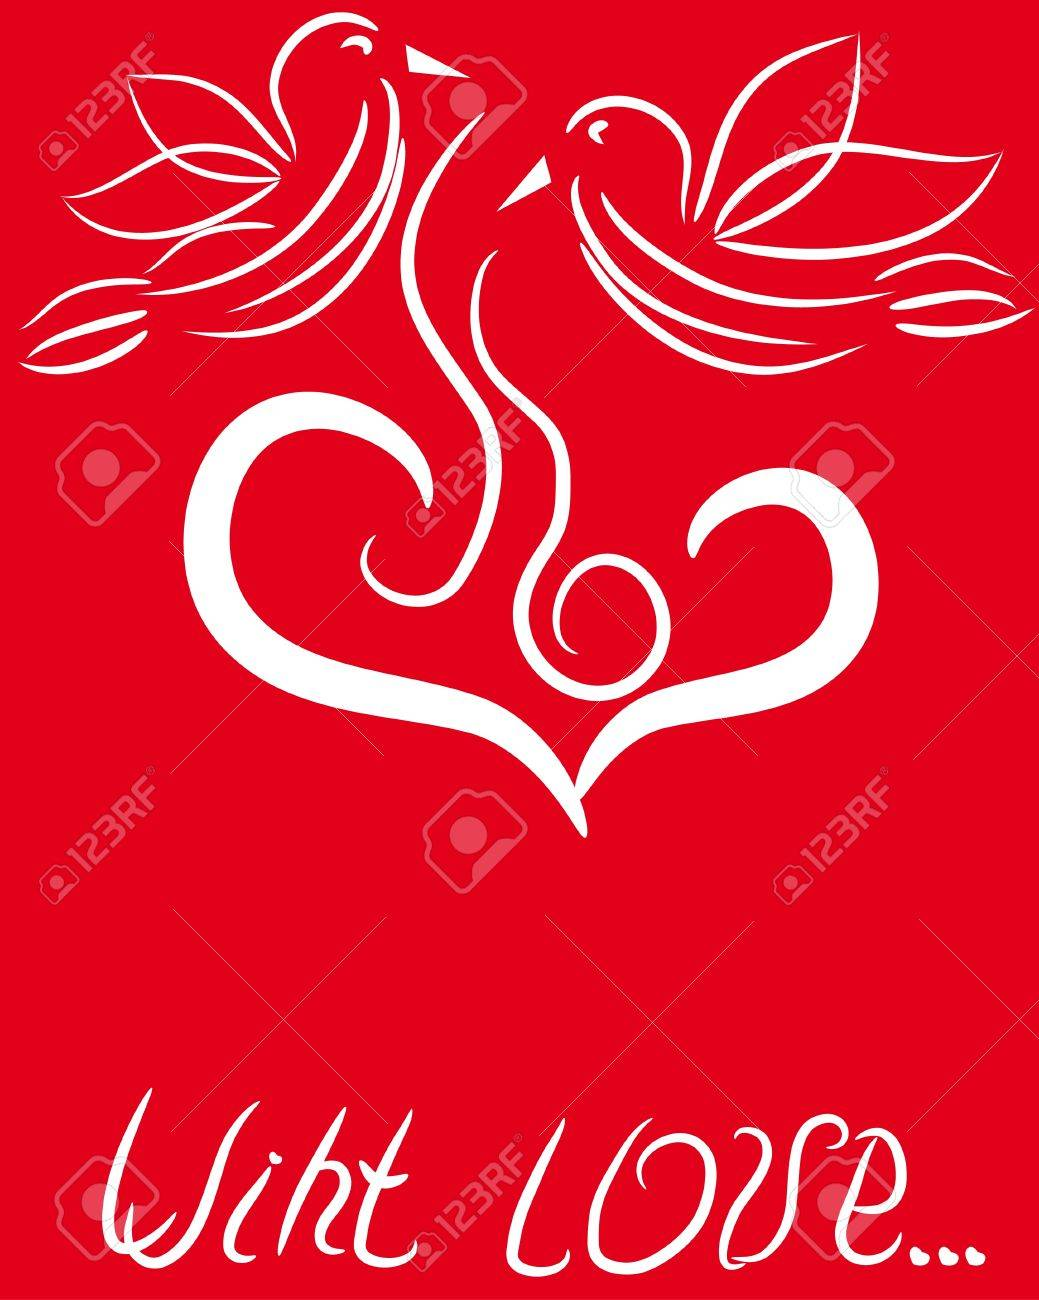 4 180world and eternity symbol two birds in flight and heart 4 180world and eternity symbol two birds in flight and heart with love biocorpaavc Images